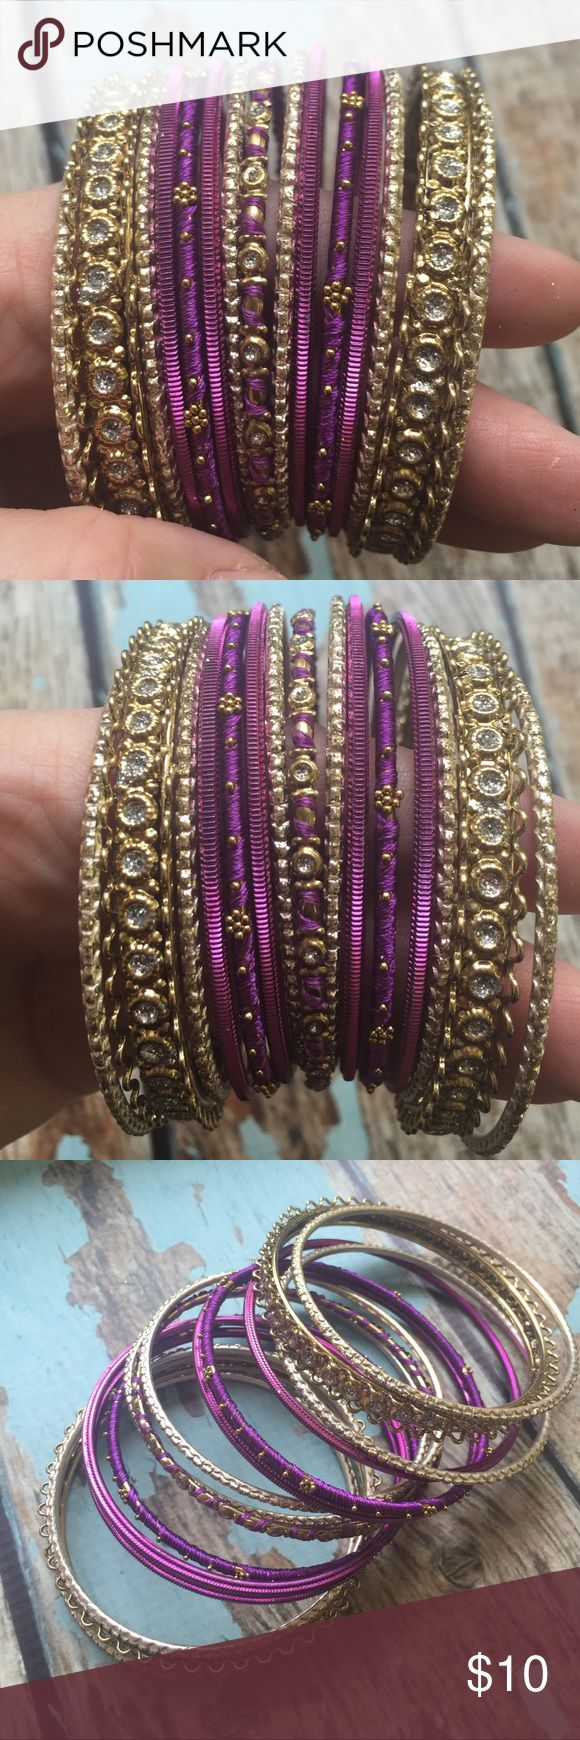 Gold and purple Indian bangles Set of 15 gold and purple glittery Indian wedding bangles-  really beautiful- never worn. Jewelry Bracelets